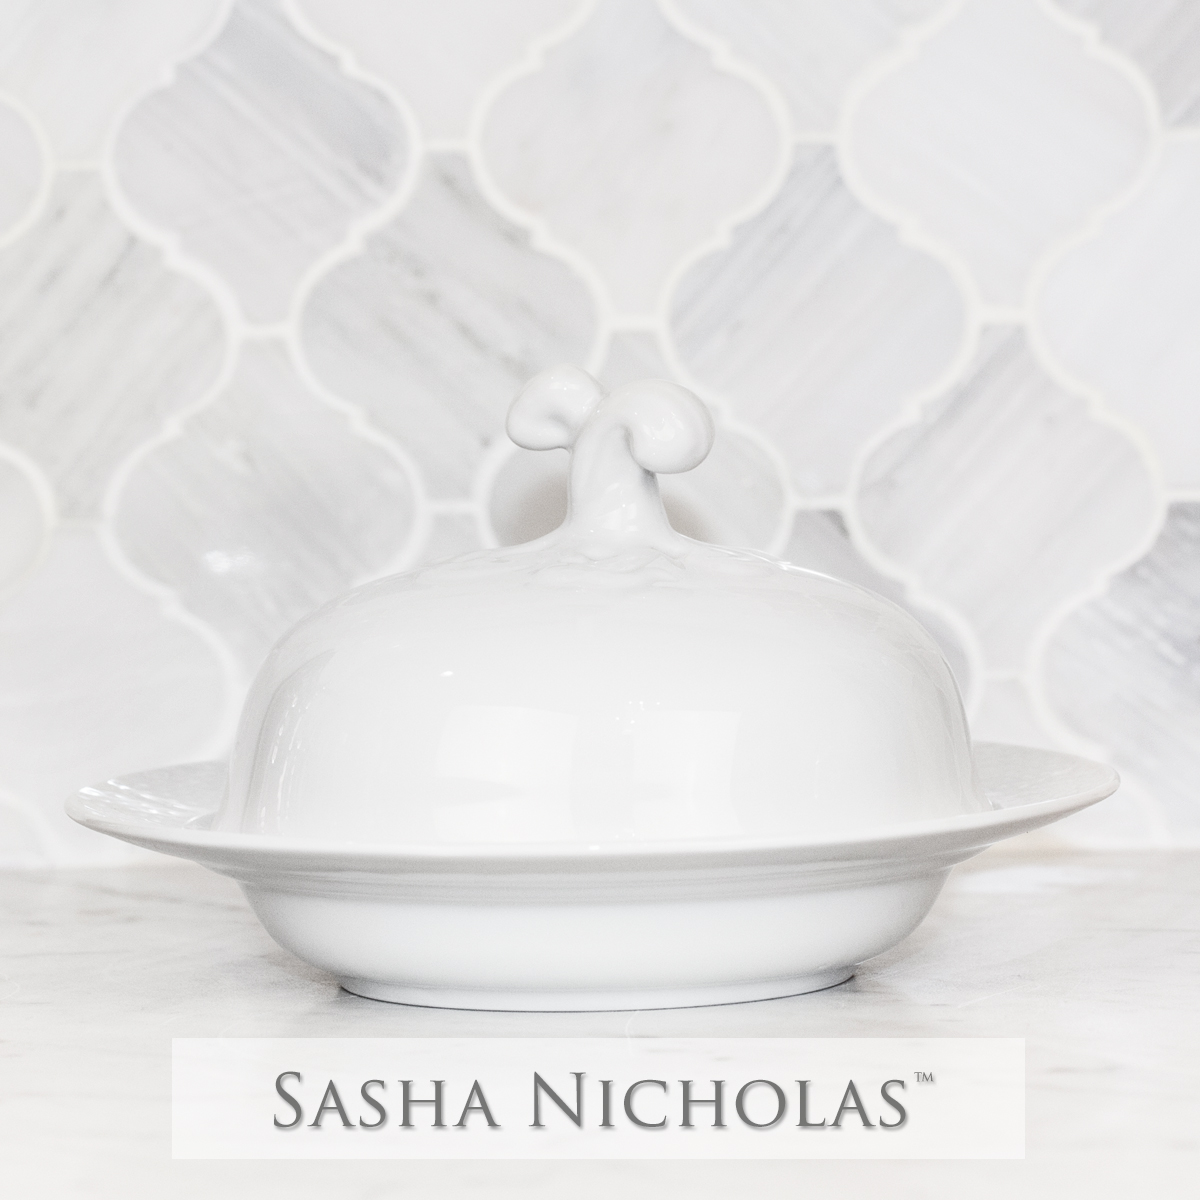 Sasha Nicholas custom dinnerware monogram crest monogrammed Wedding registry bridal gift covered bowl basketweave weave